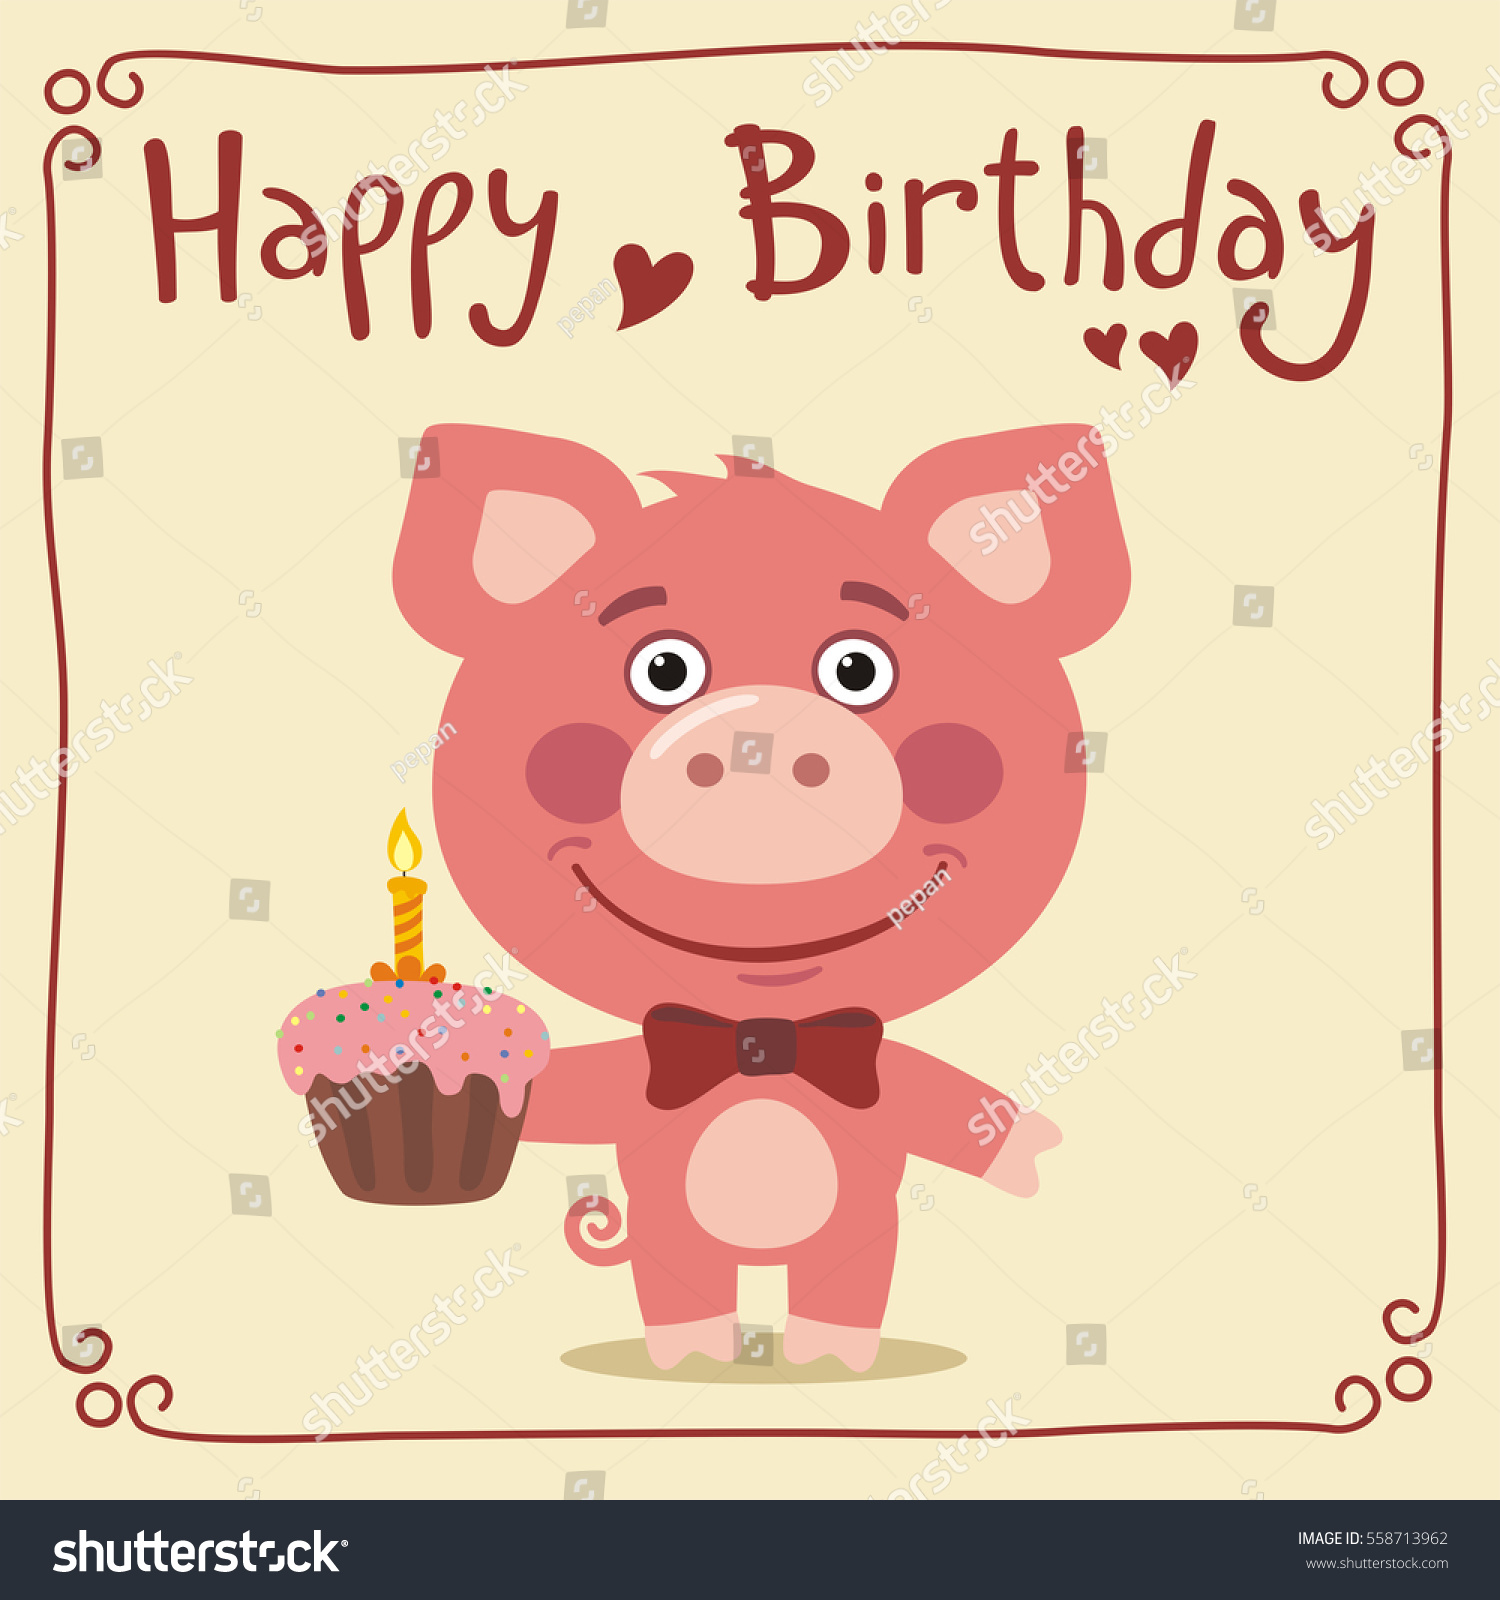 Happy Birthday Funny Pig Birthday Cake Stock Vector